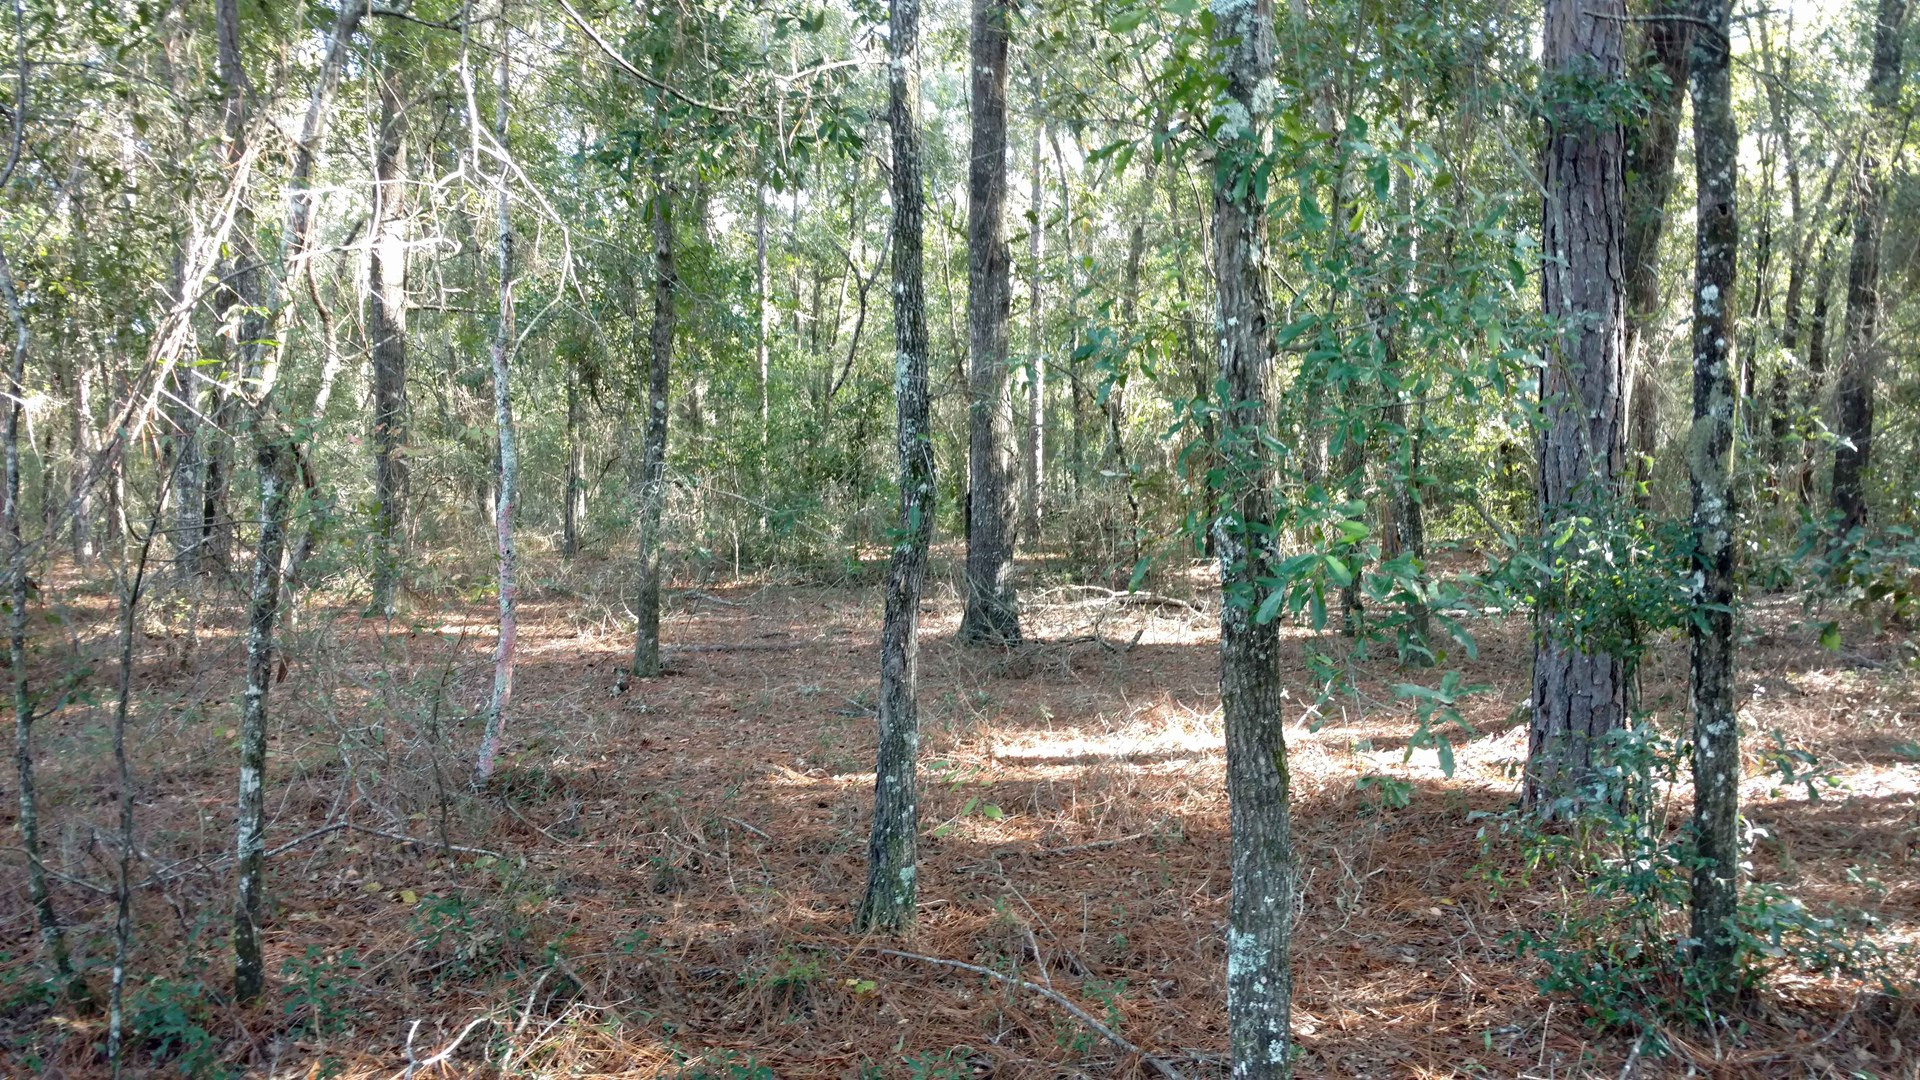 5 ACRES FOR SALE IN FORT WHITE, FLORIDA